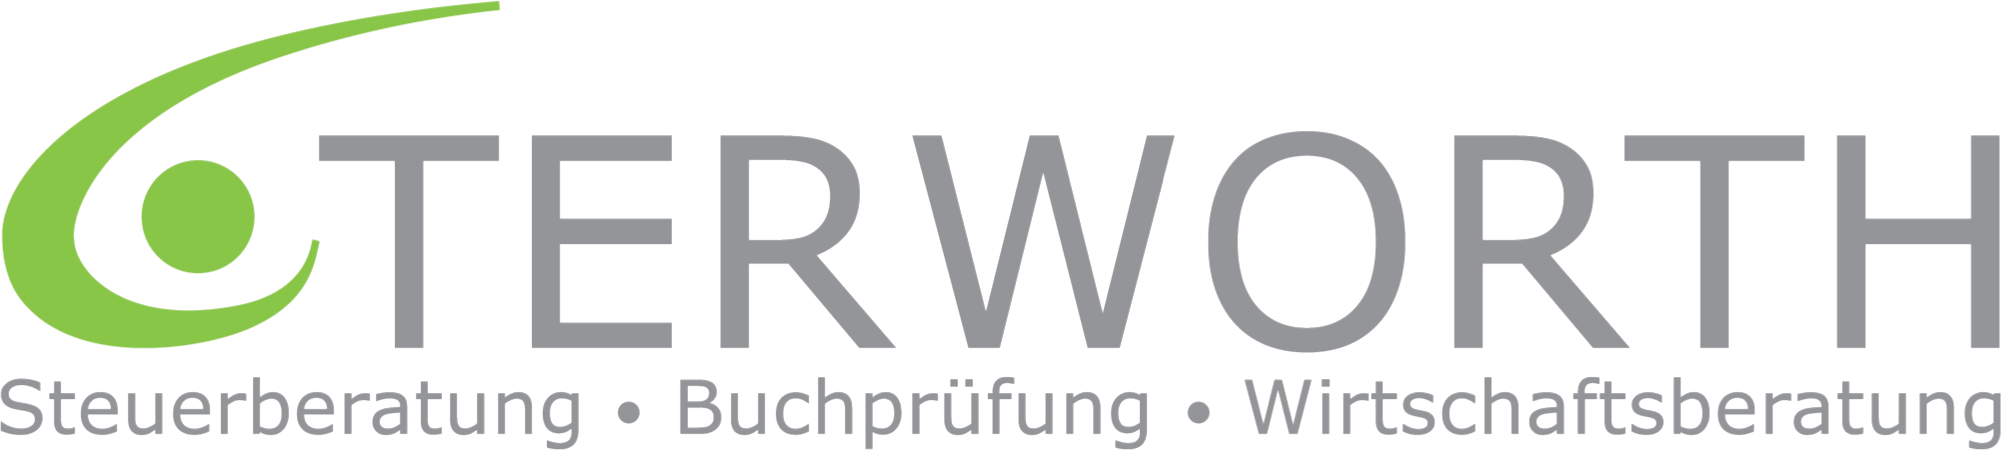 Steuerberater Velbert & Steuerberater E-Commerce | Terworth und Partner